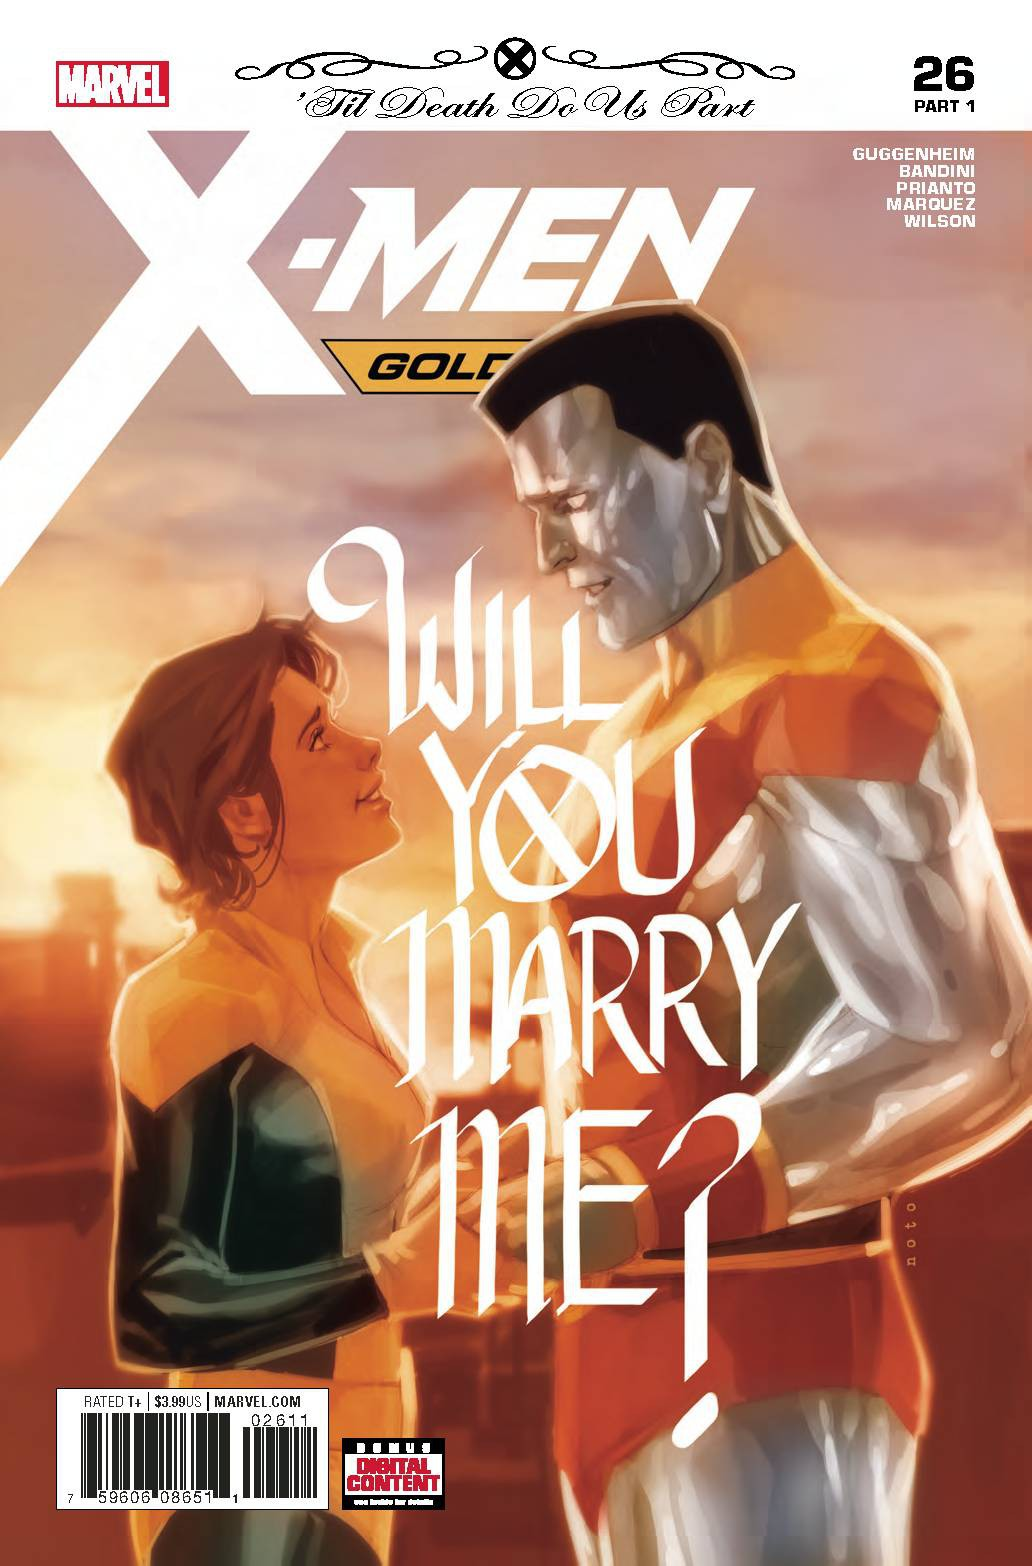 Marvel X-Men Gold #26 by